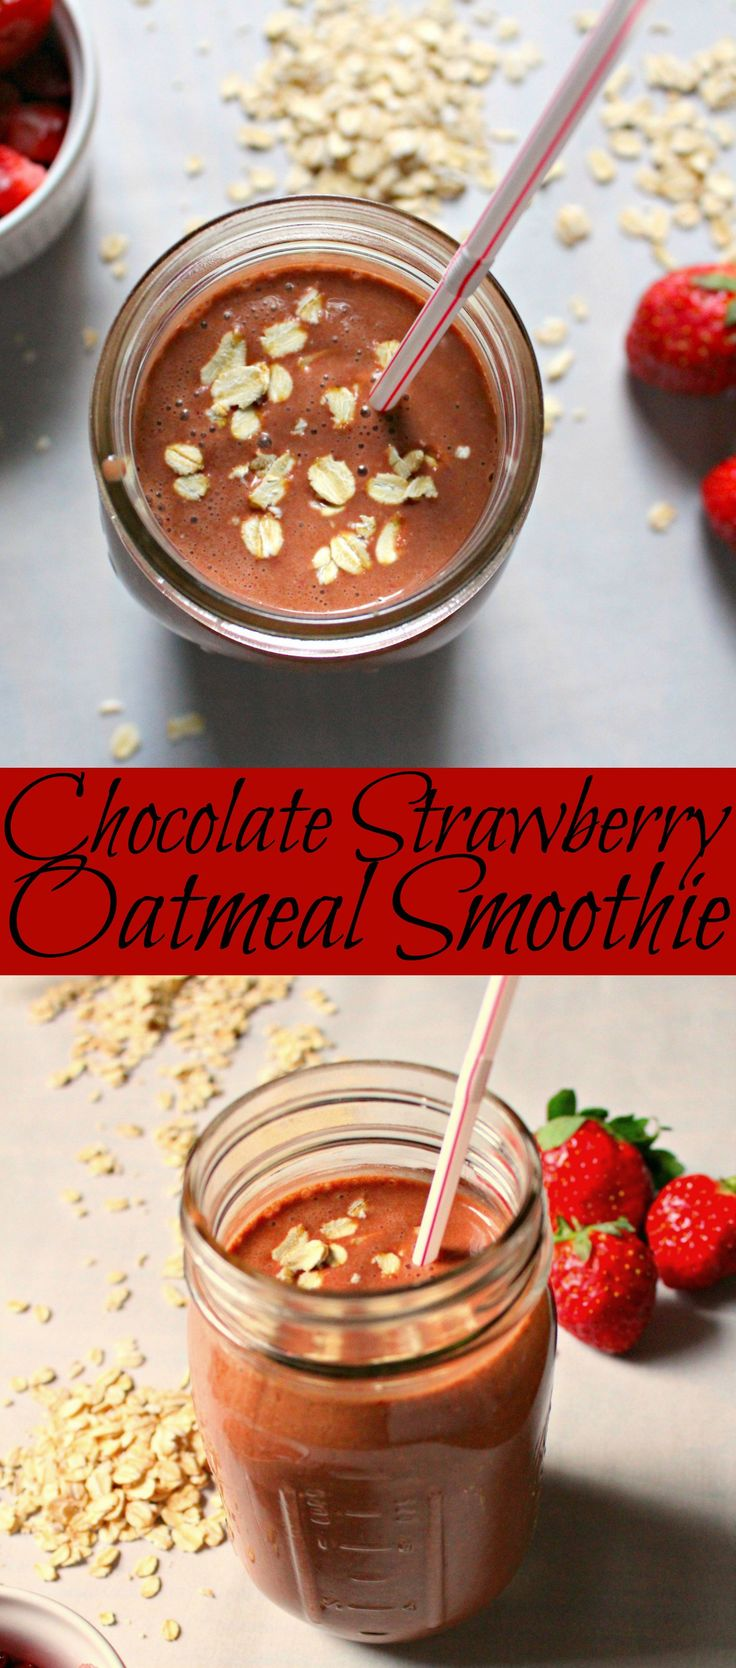 Chocolate Strawberry Oatmeal Smoothie from @Not2ShabbyGabby